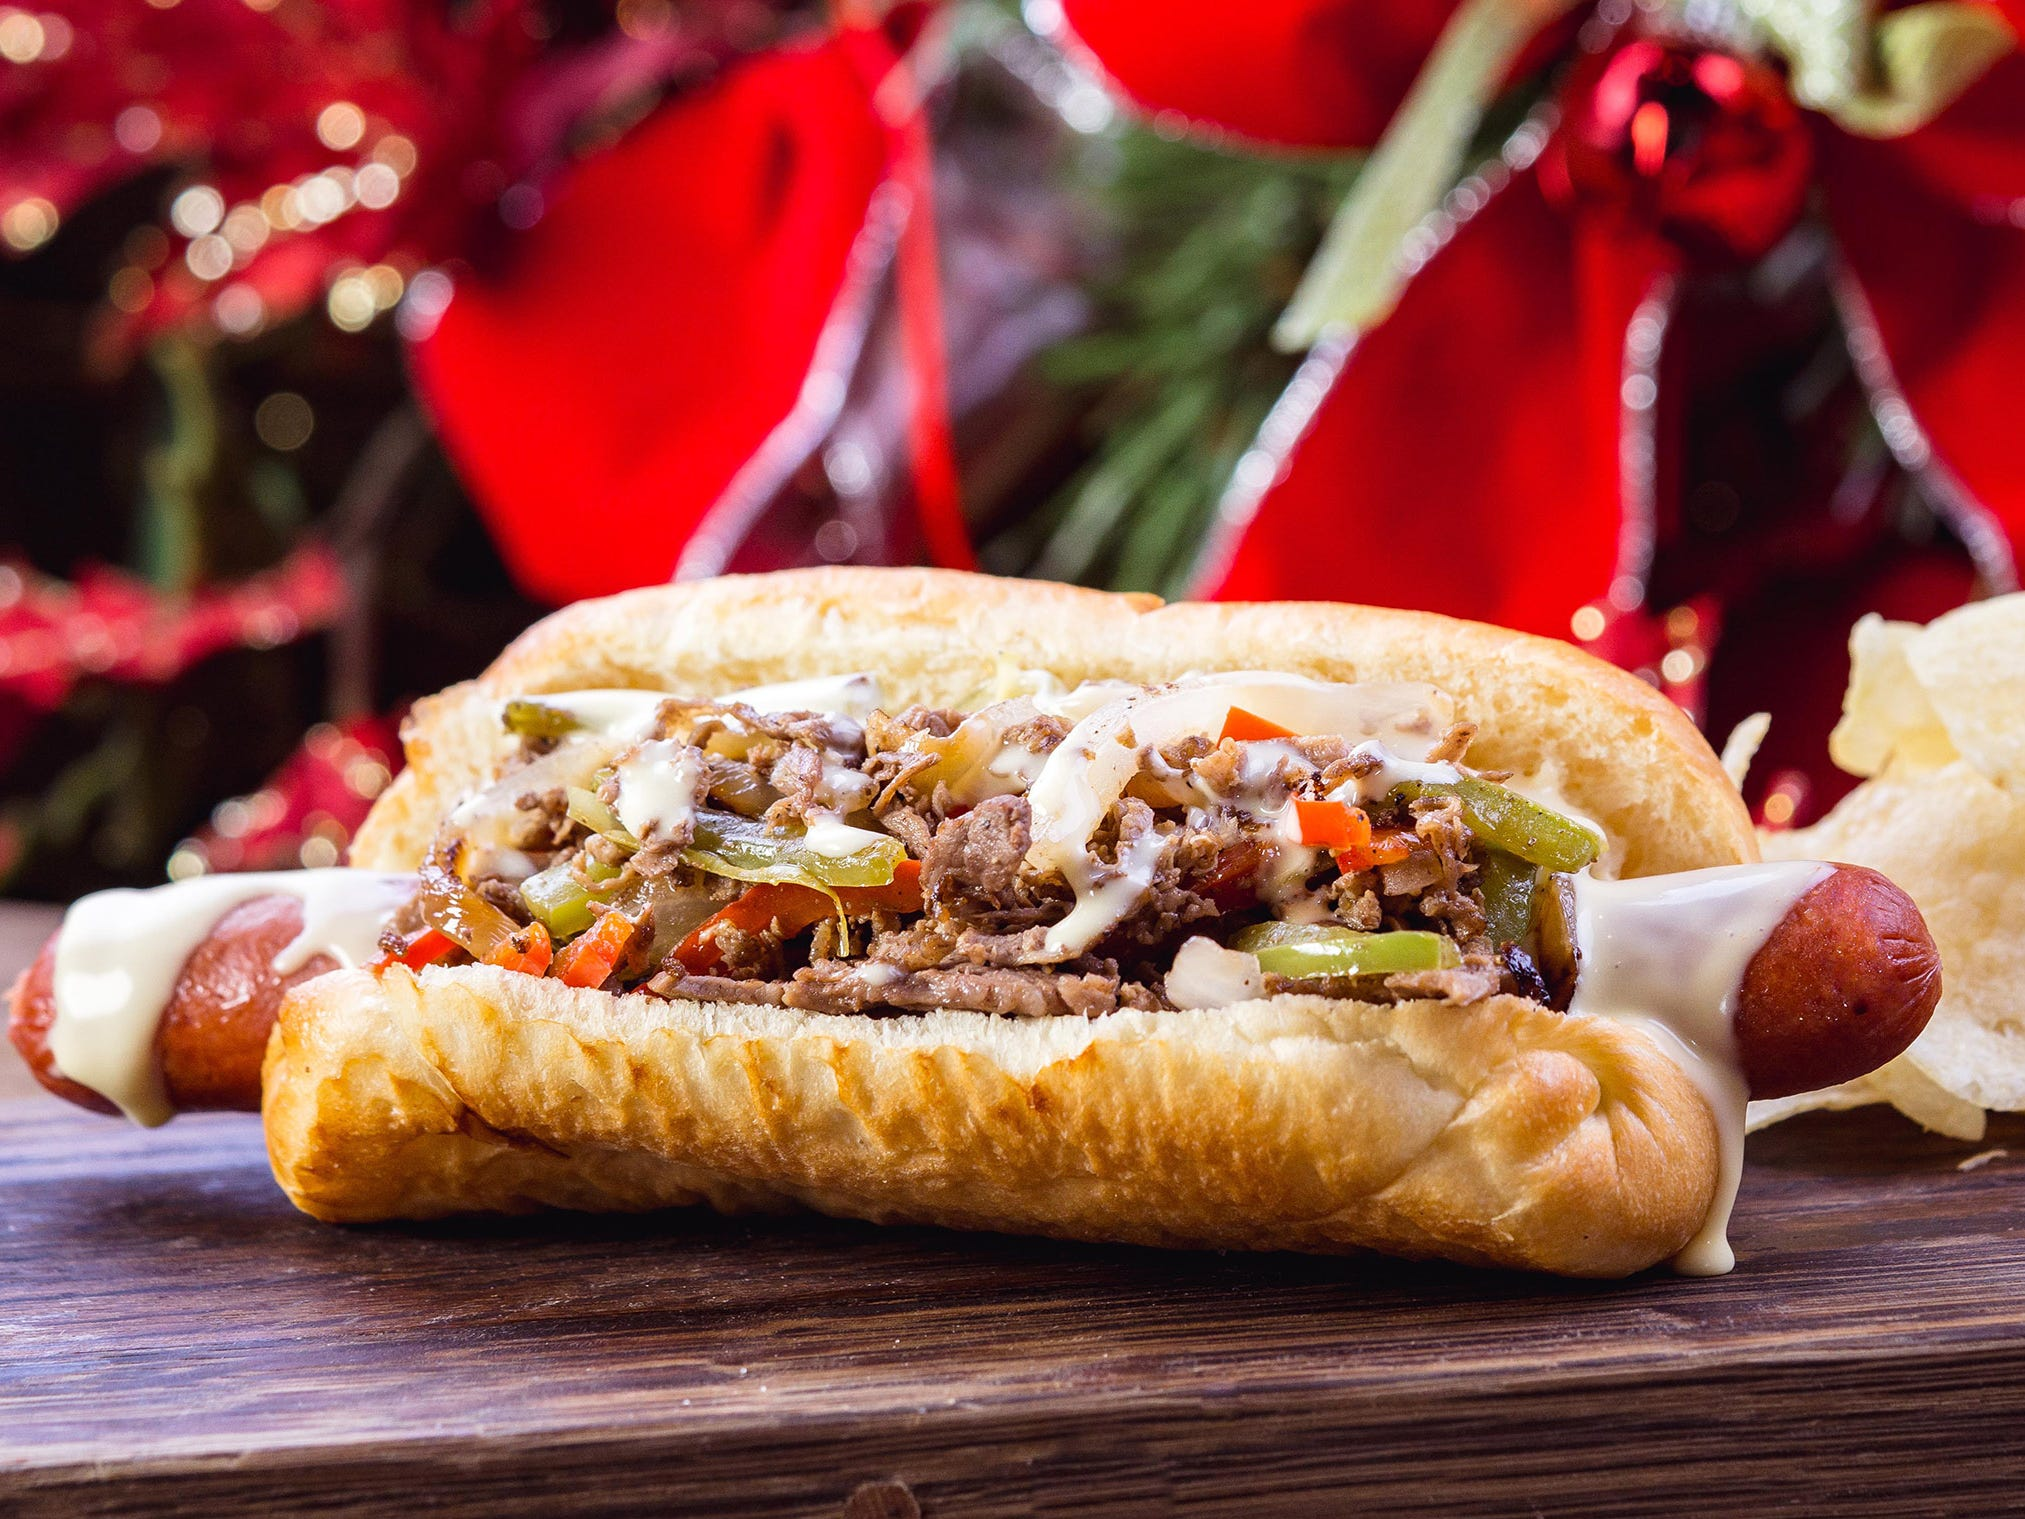 The Philly cheesesteak dog can be found for a limited time at Refreshment Corner on Main Street, U.S.A. at Disneyland park during Holidays at the Disneyland Resort.